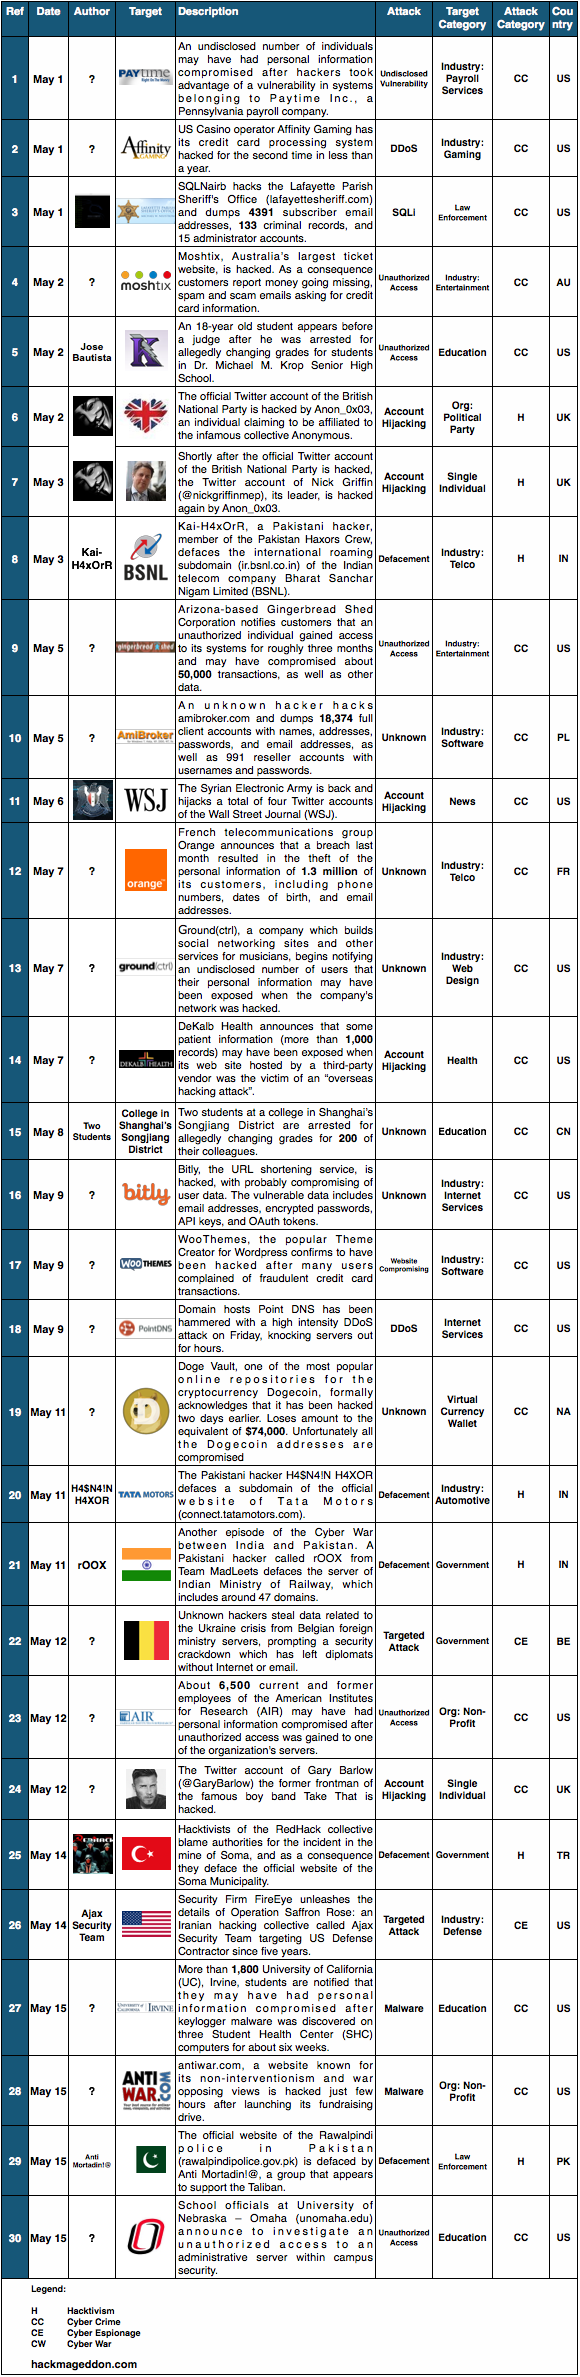 1-15 May 2014 Cyber Attacks Timelines